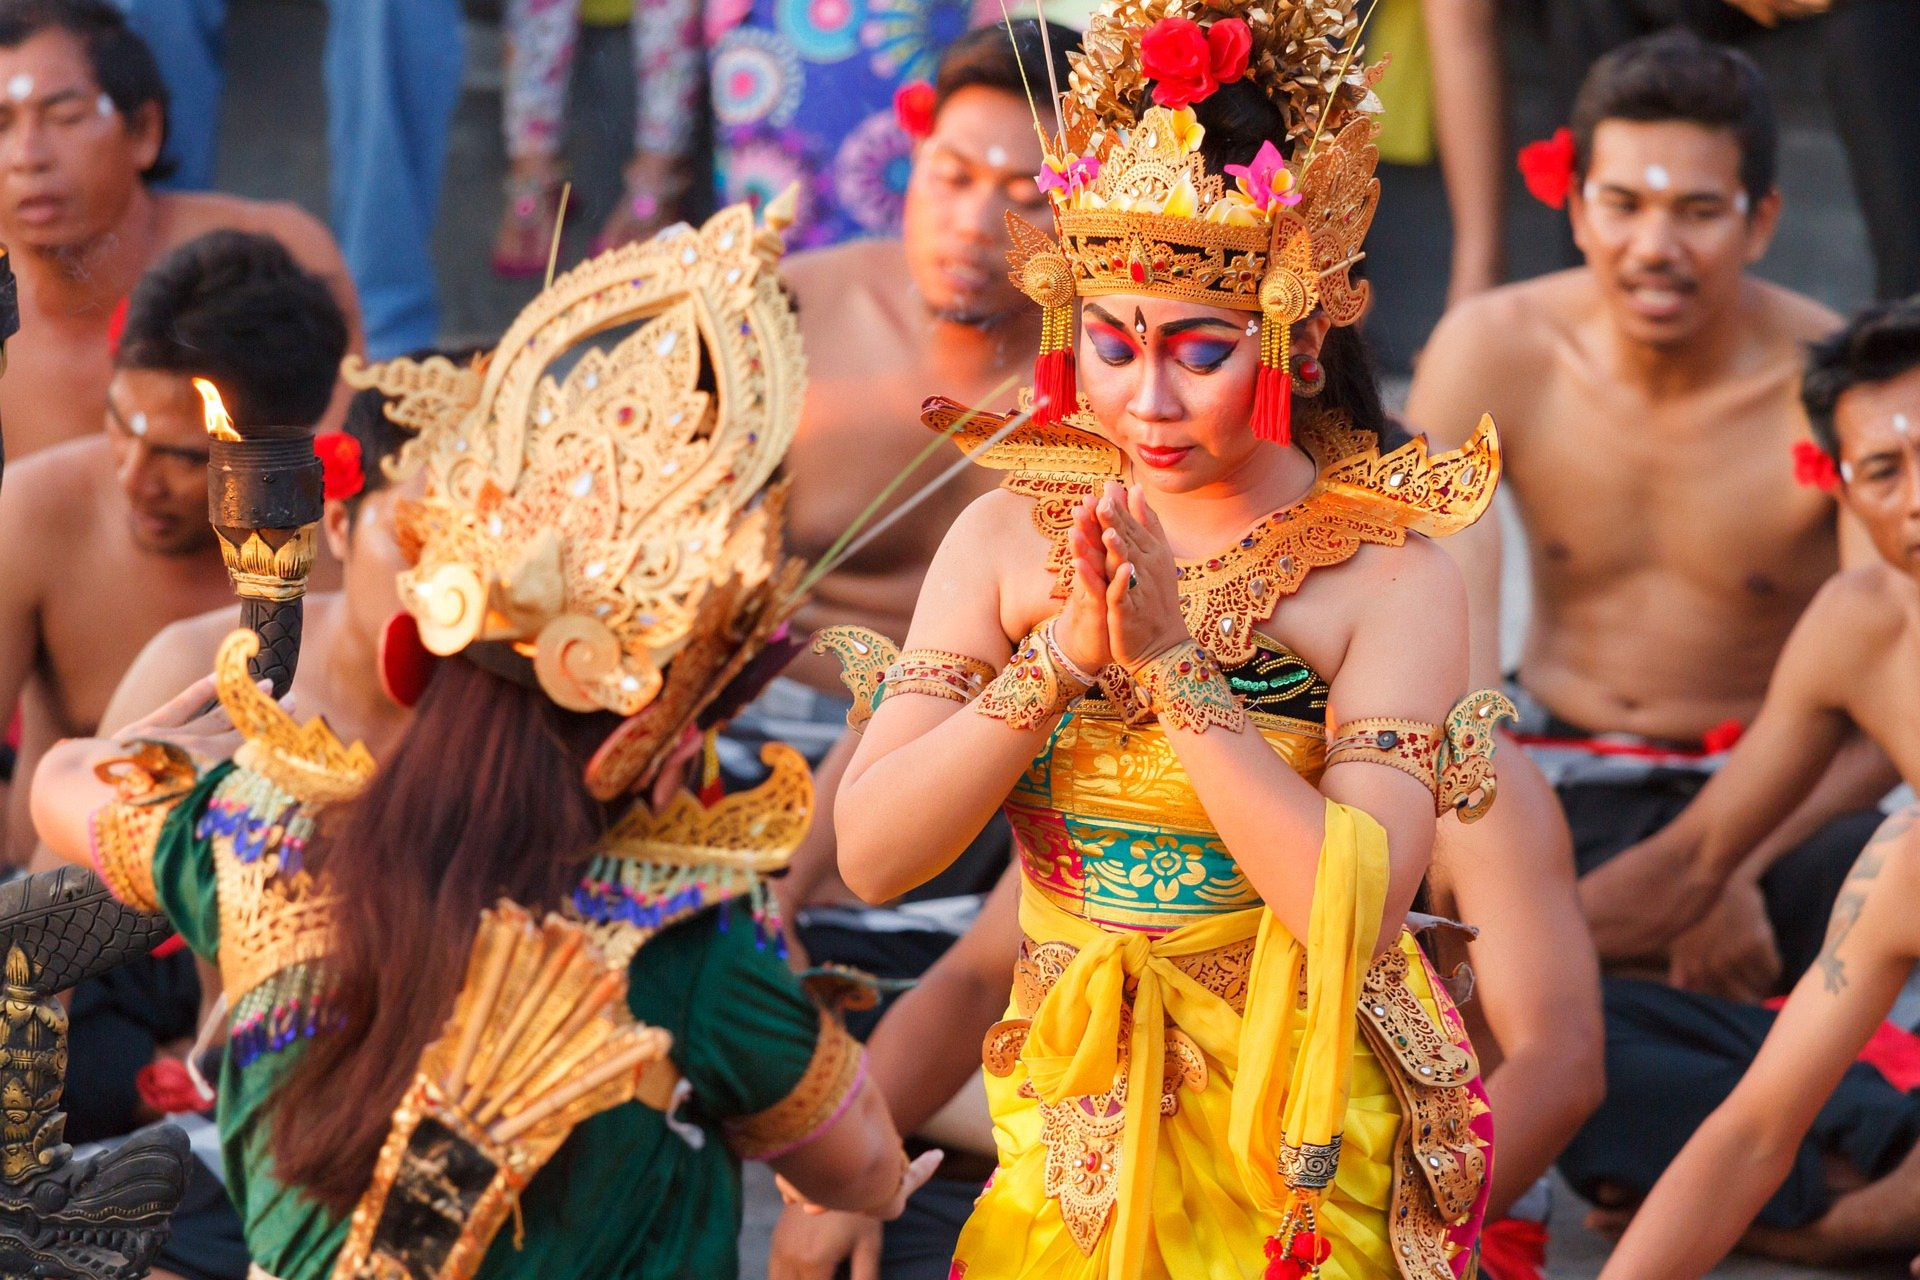 5-Day Luxury Central and South Bali - Indonesia Itinerary